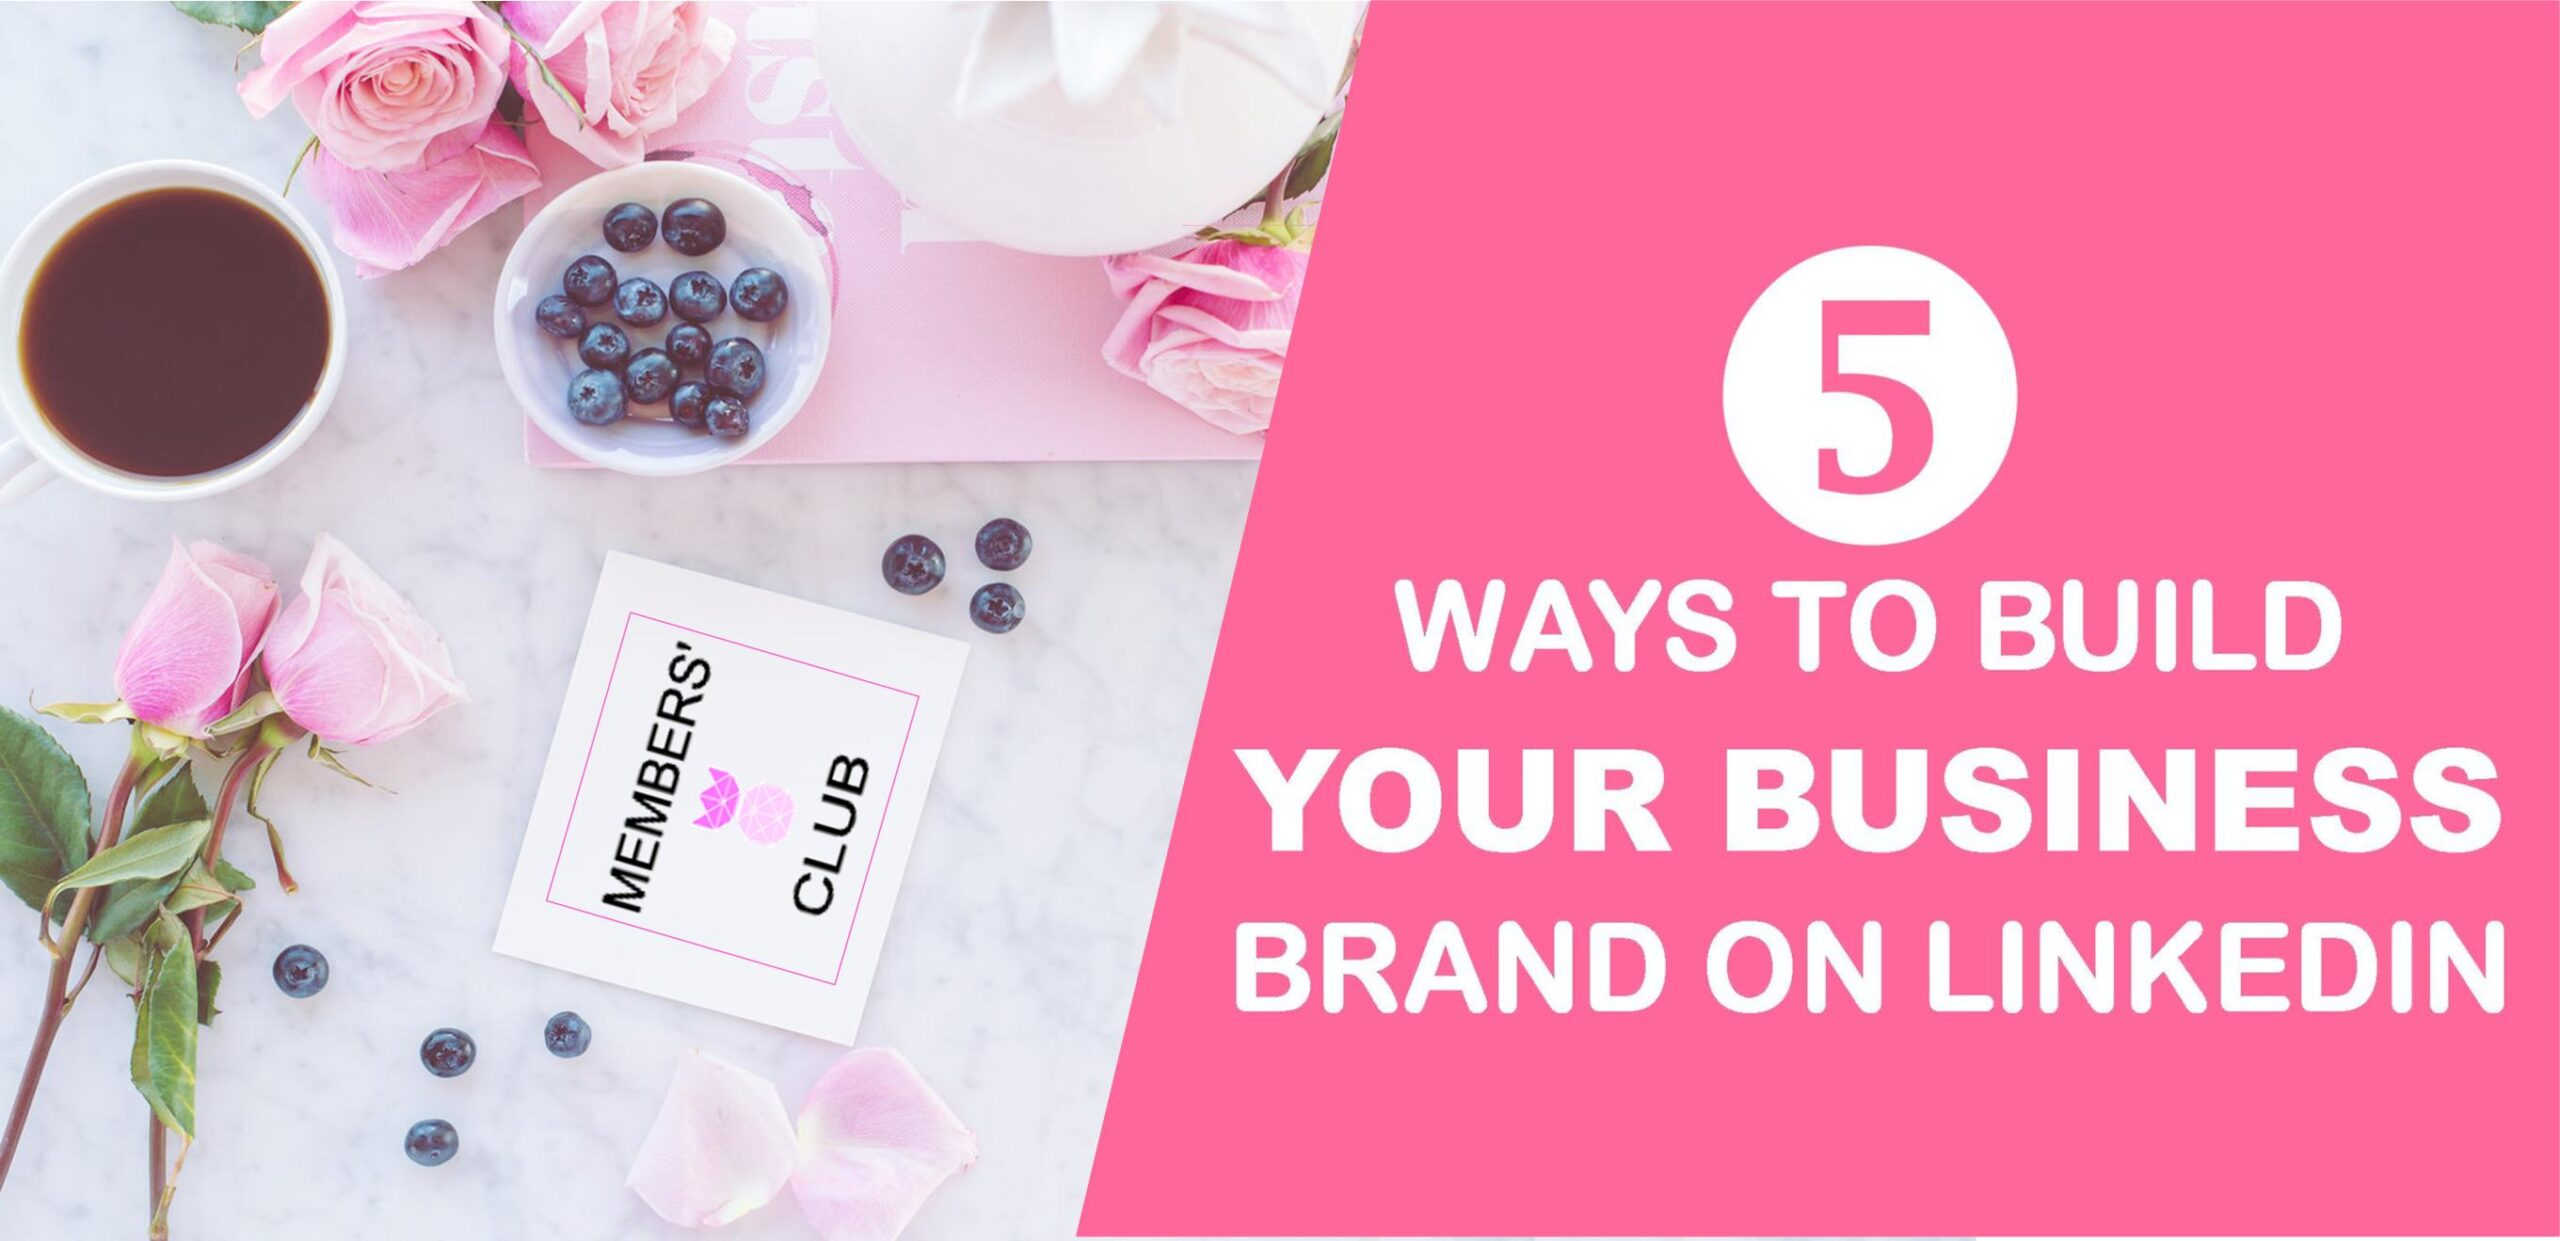 5 Ways to Build Your Business Brand on LinkedIn